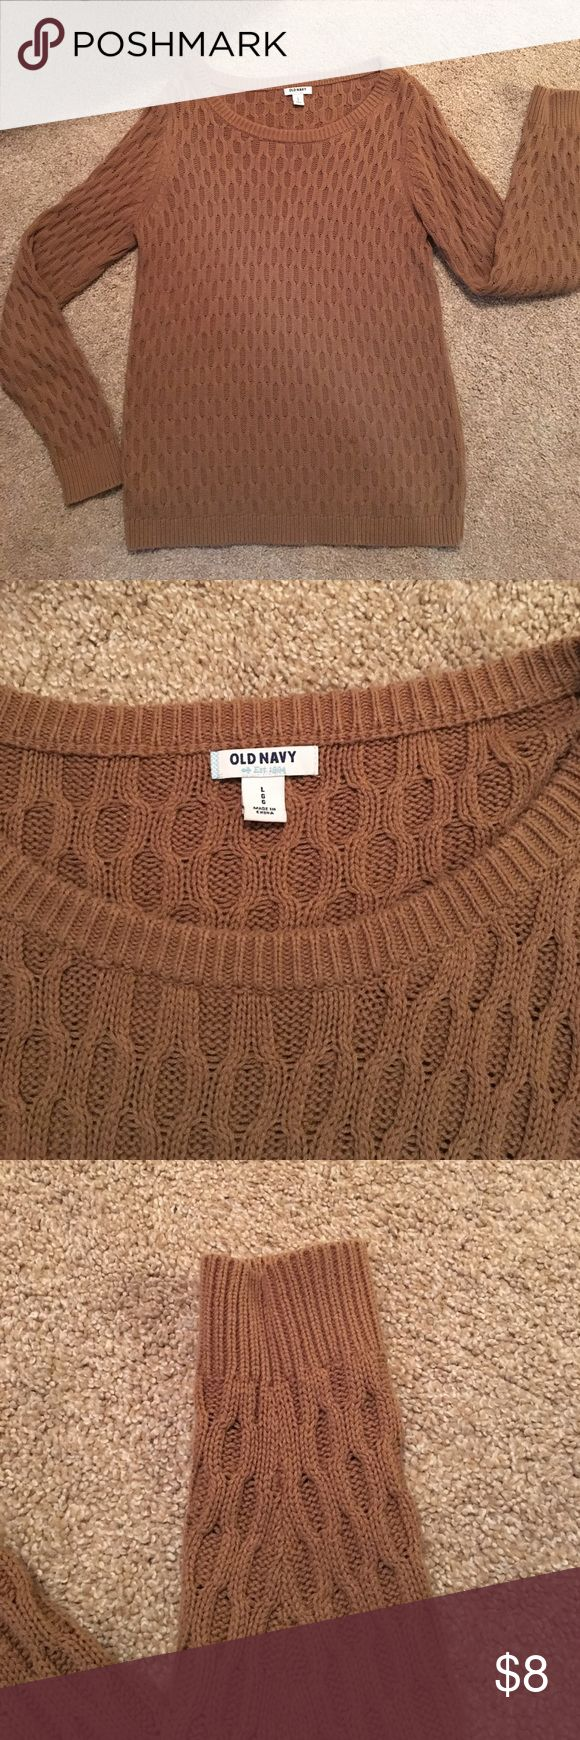 Women's Tan Old Navy Sweater Perfect for leggings or jeans. Woven texture. Old Navy Sweaters Crew & Scoop Necks